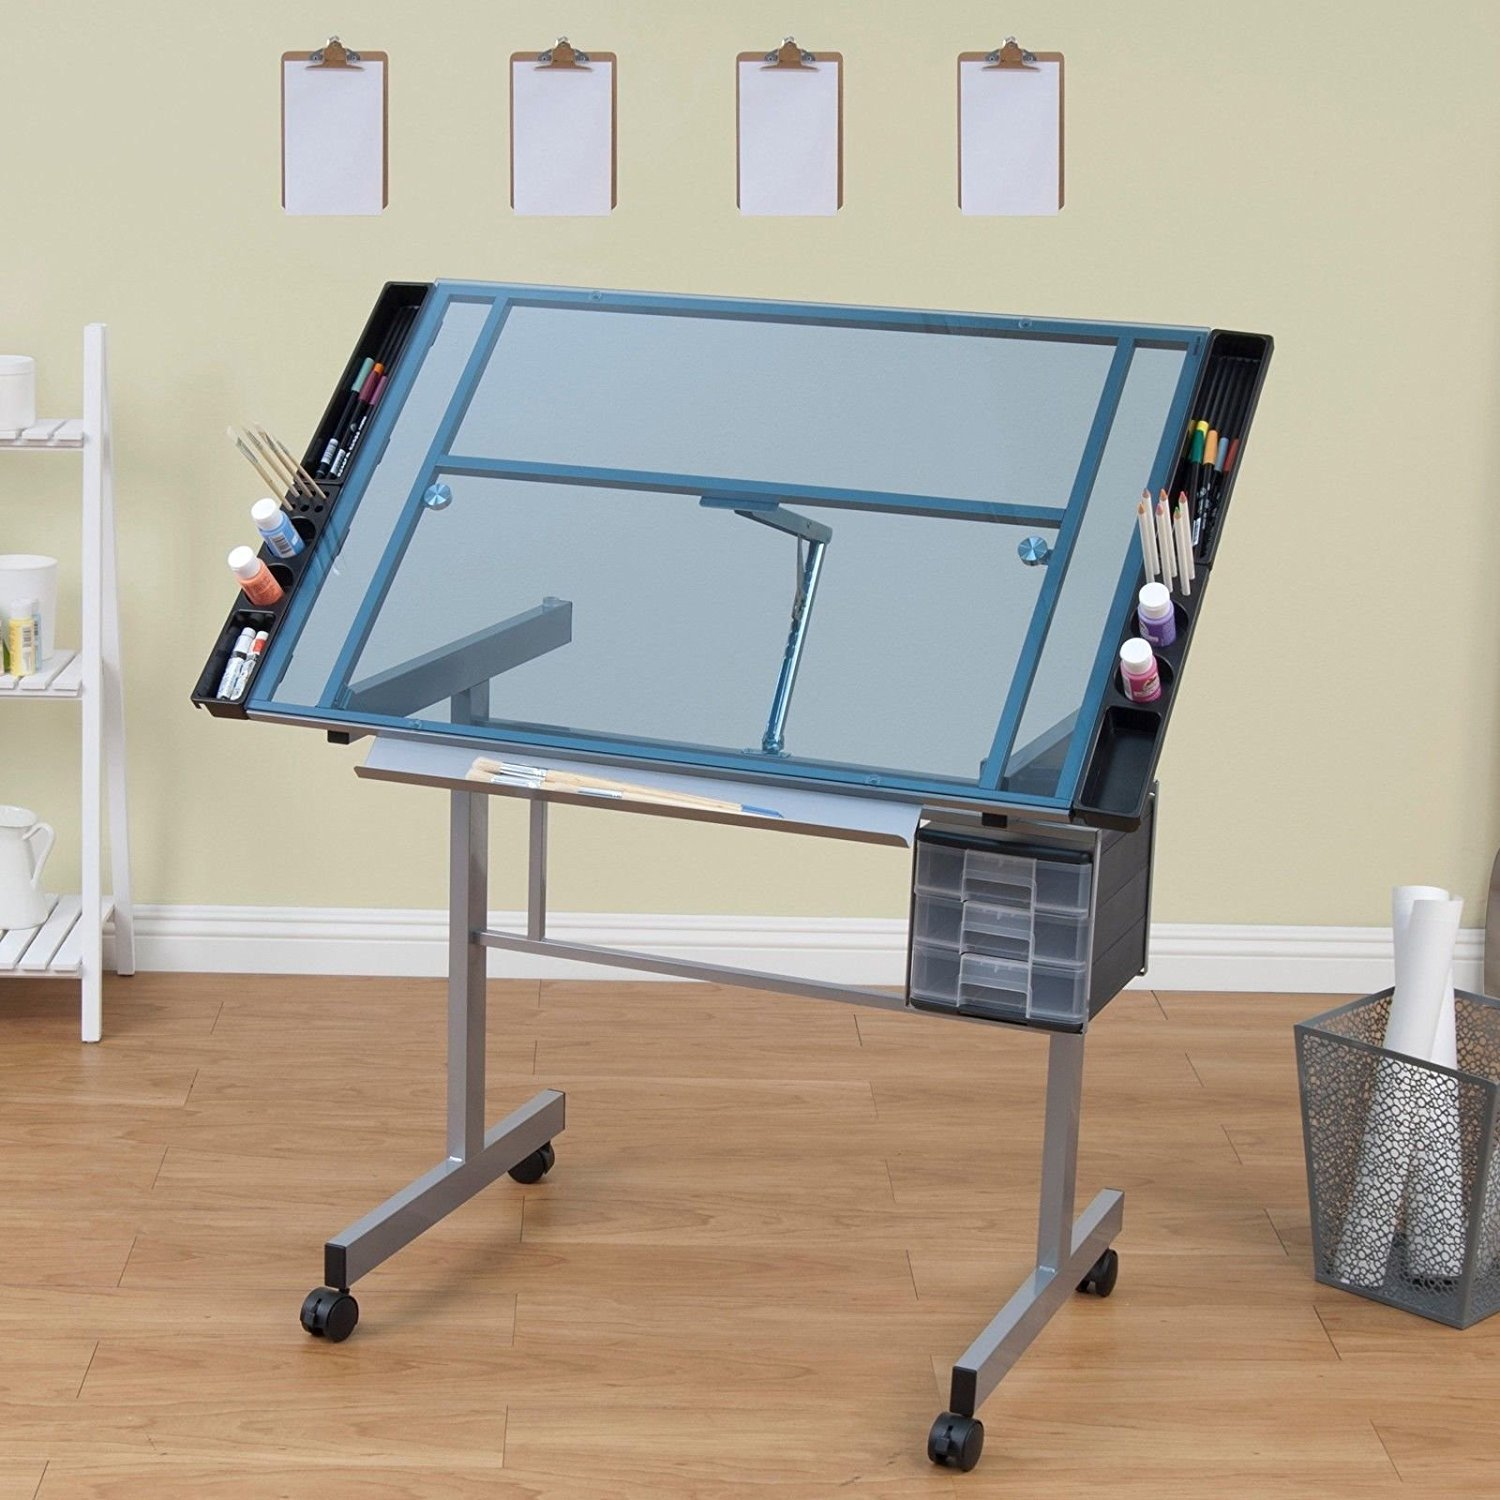 Cheap Hobby Craft Table Find Hobby Craft Table Deals On Line At